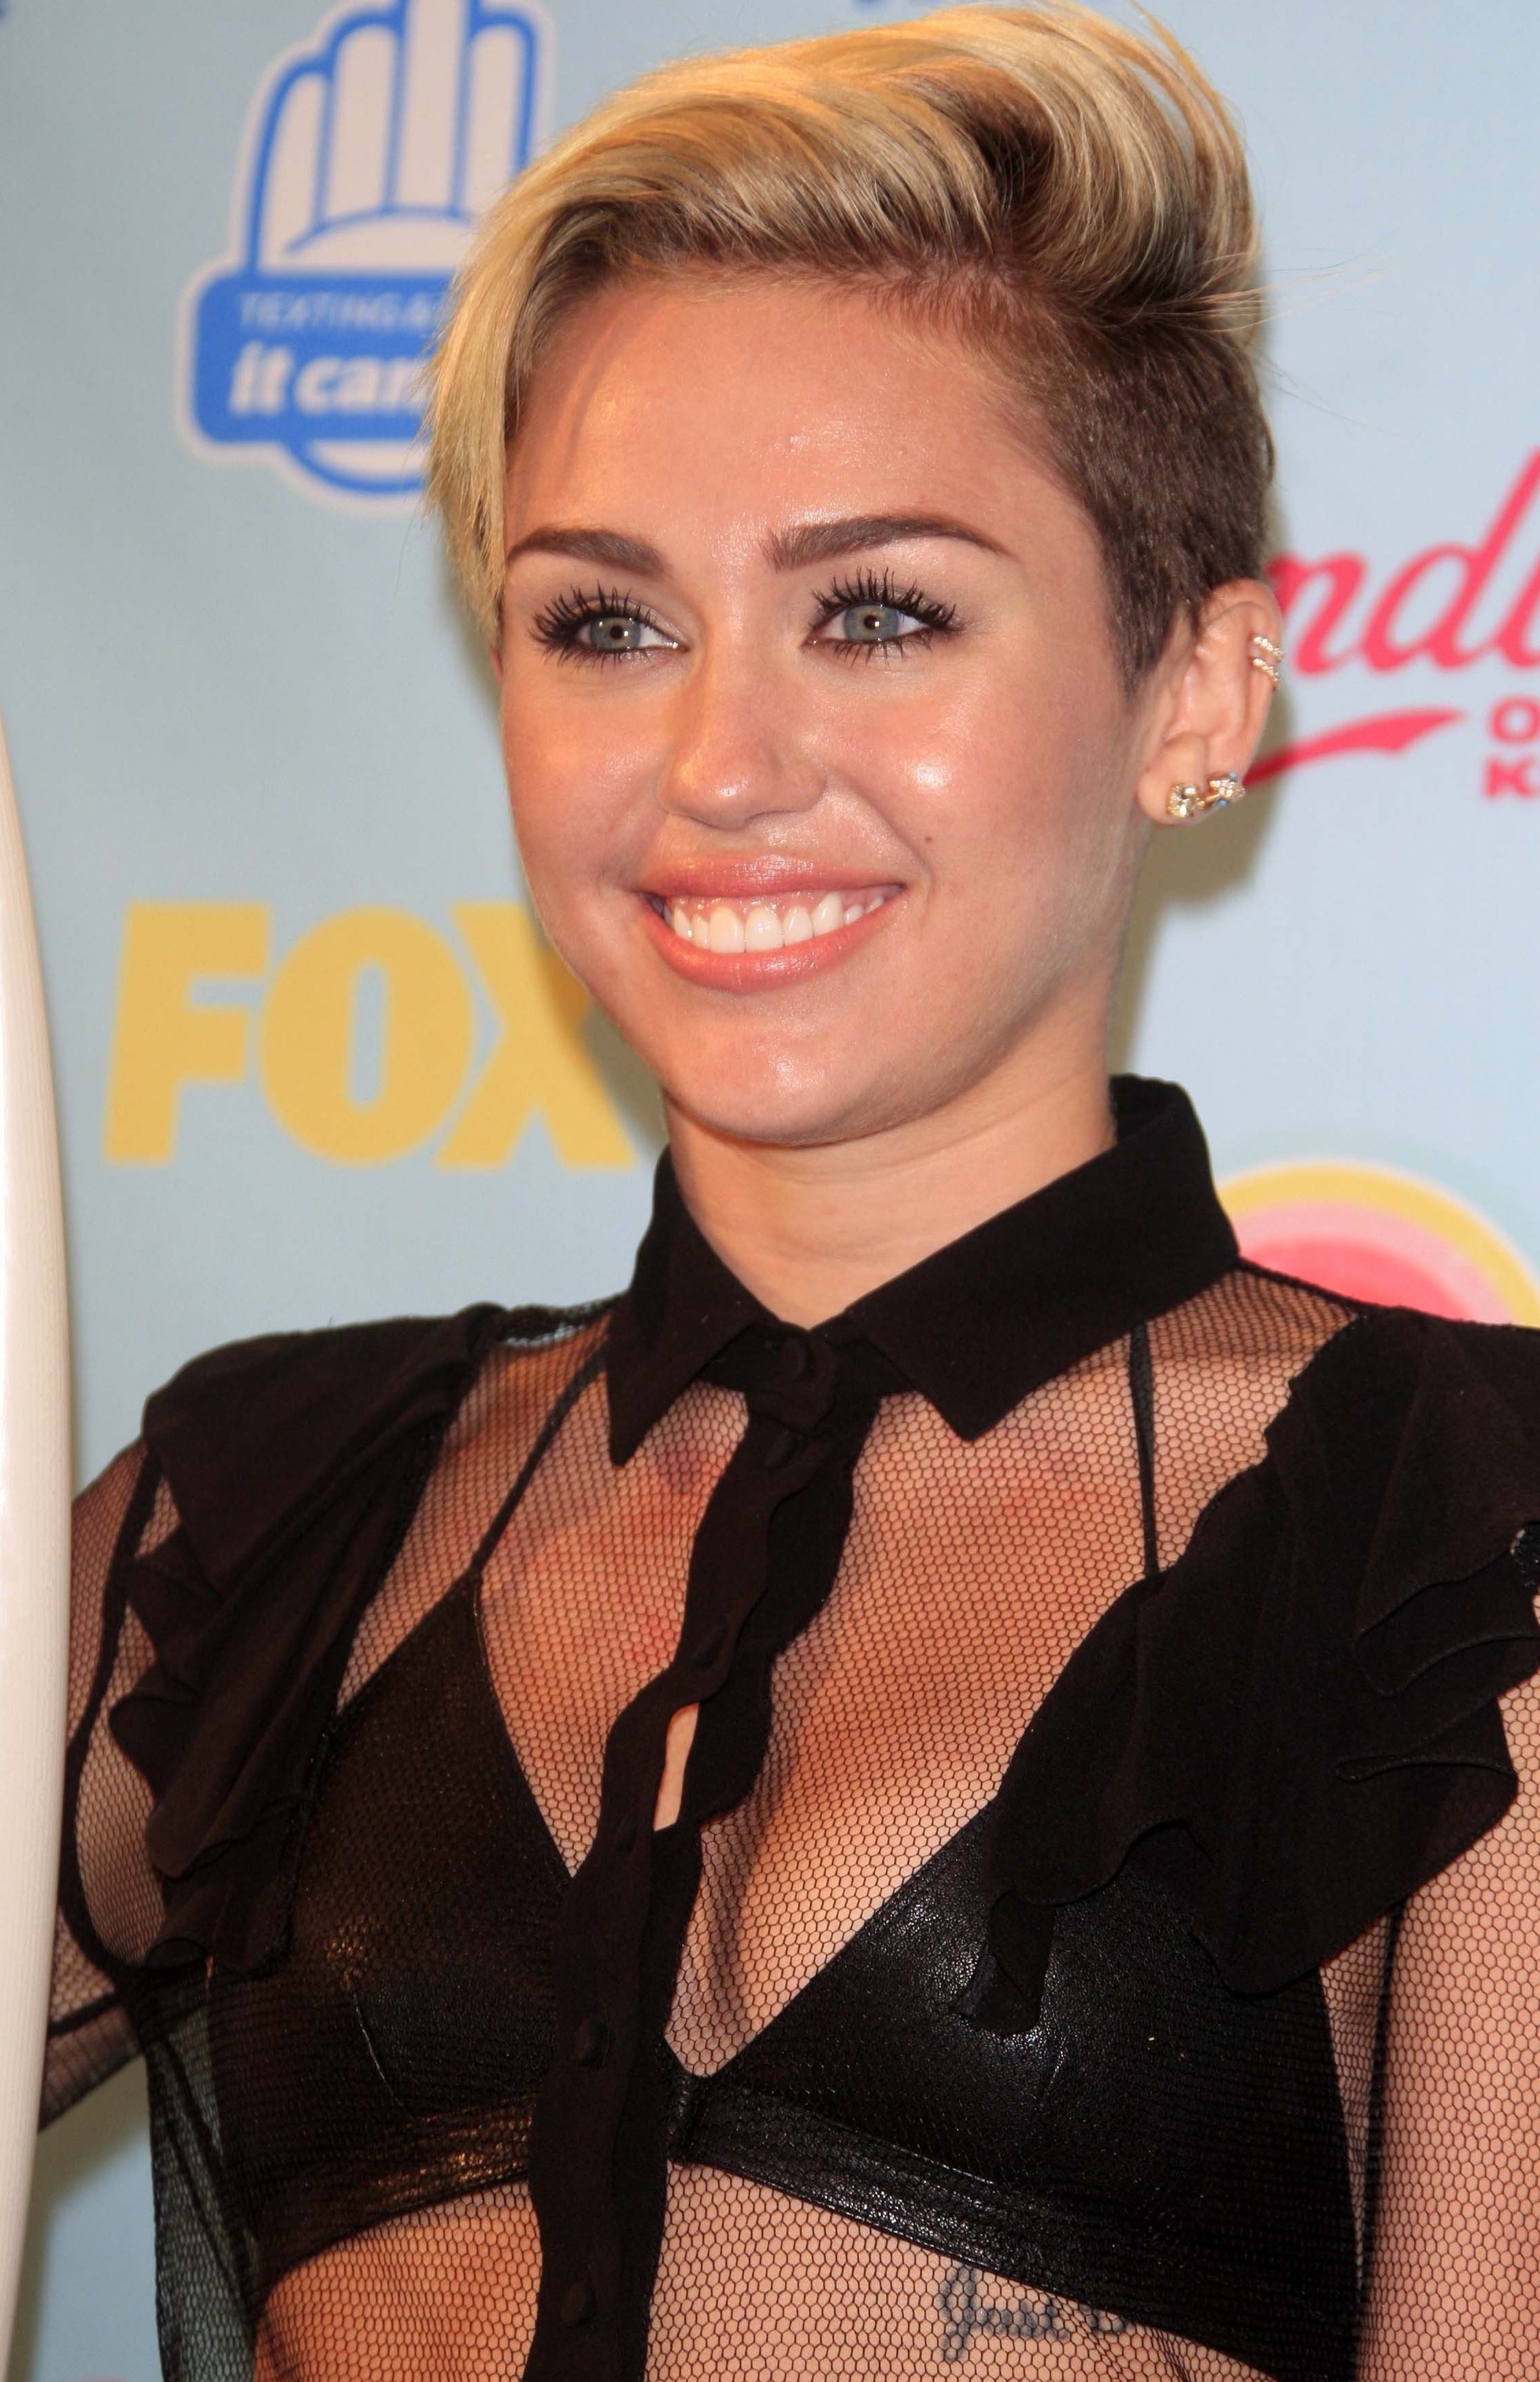 Miley Cyrus with her Blonde Side Parted Undercut